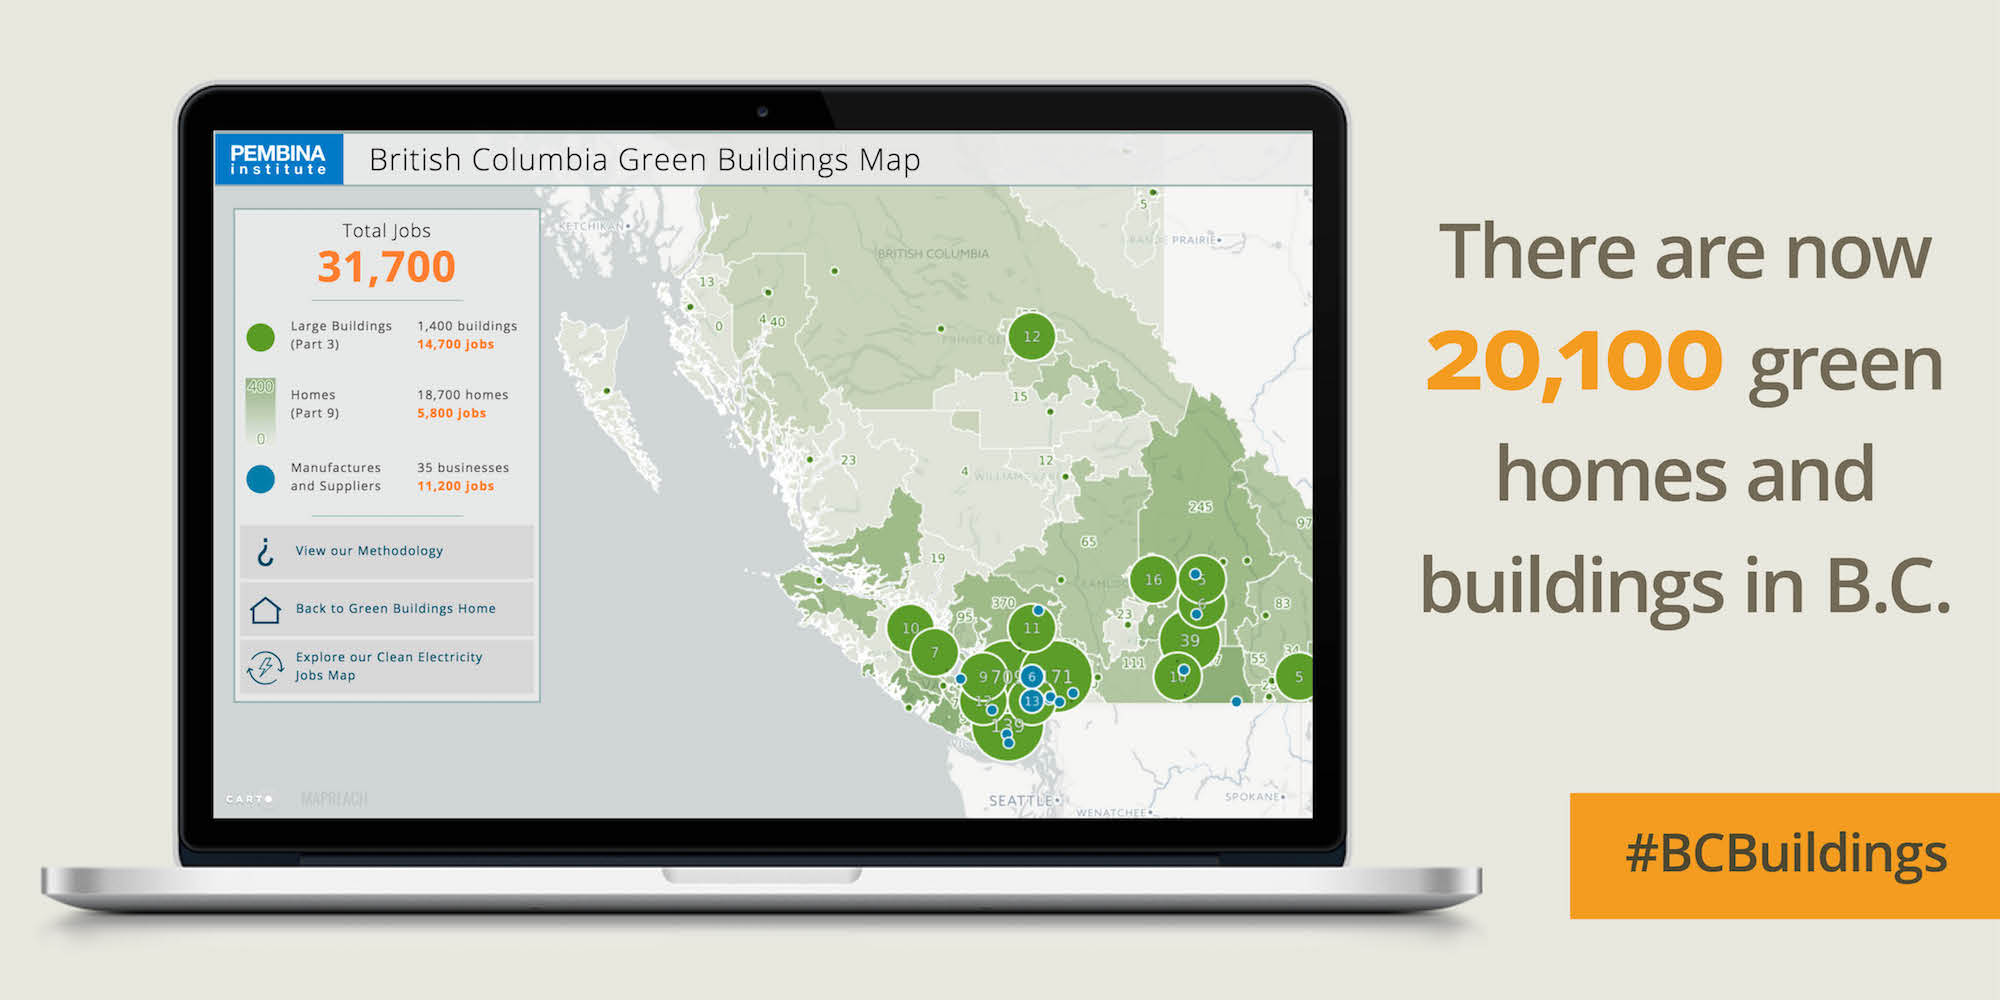 B.C. Green Buildings Map